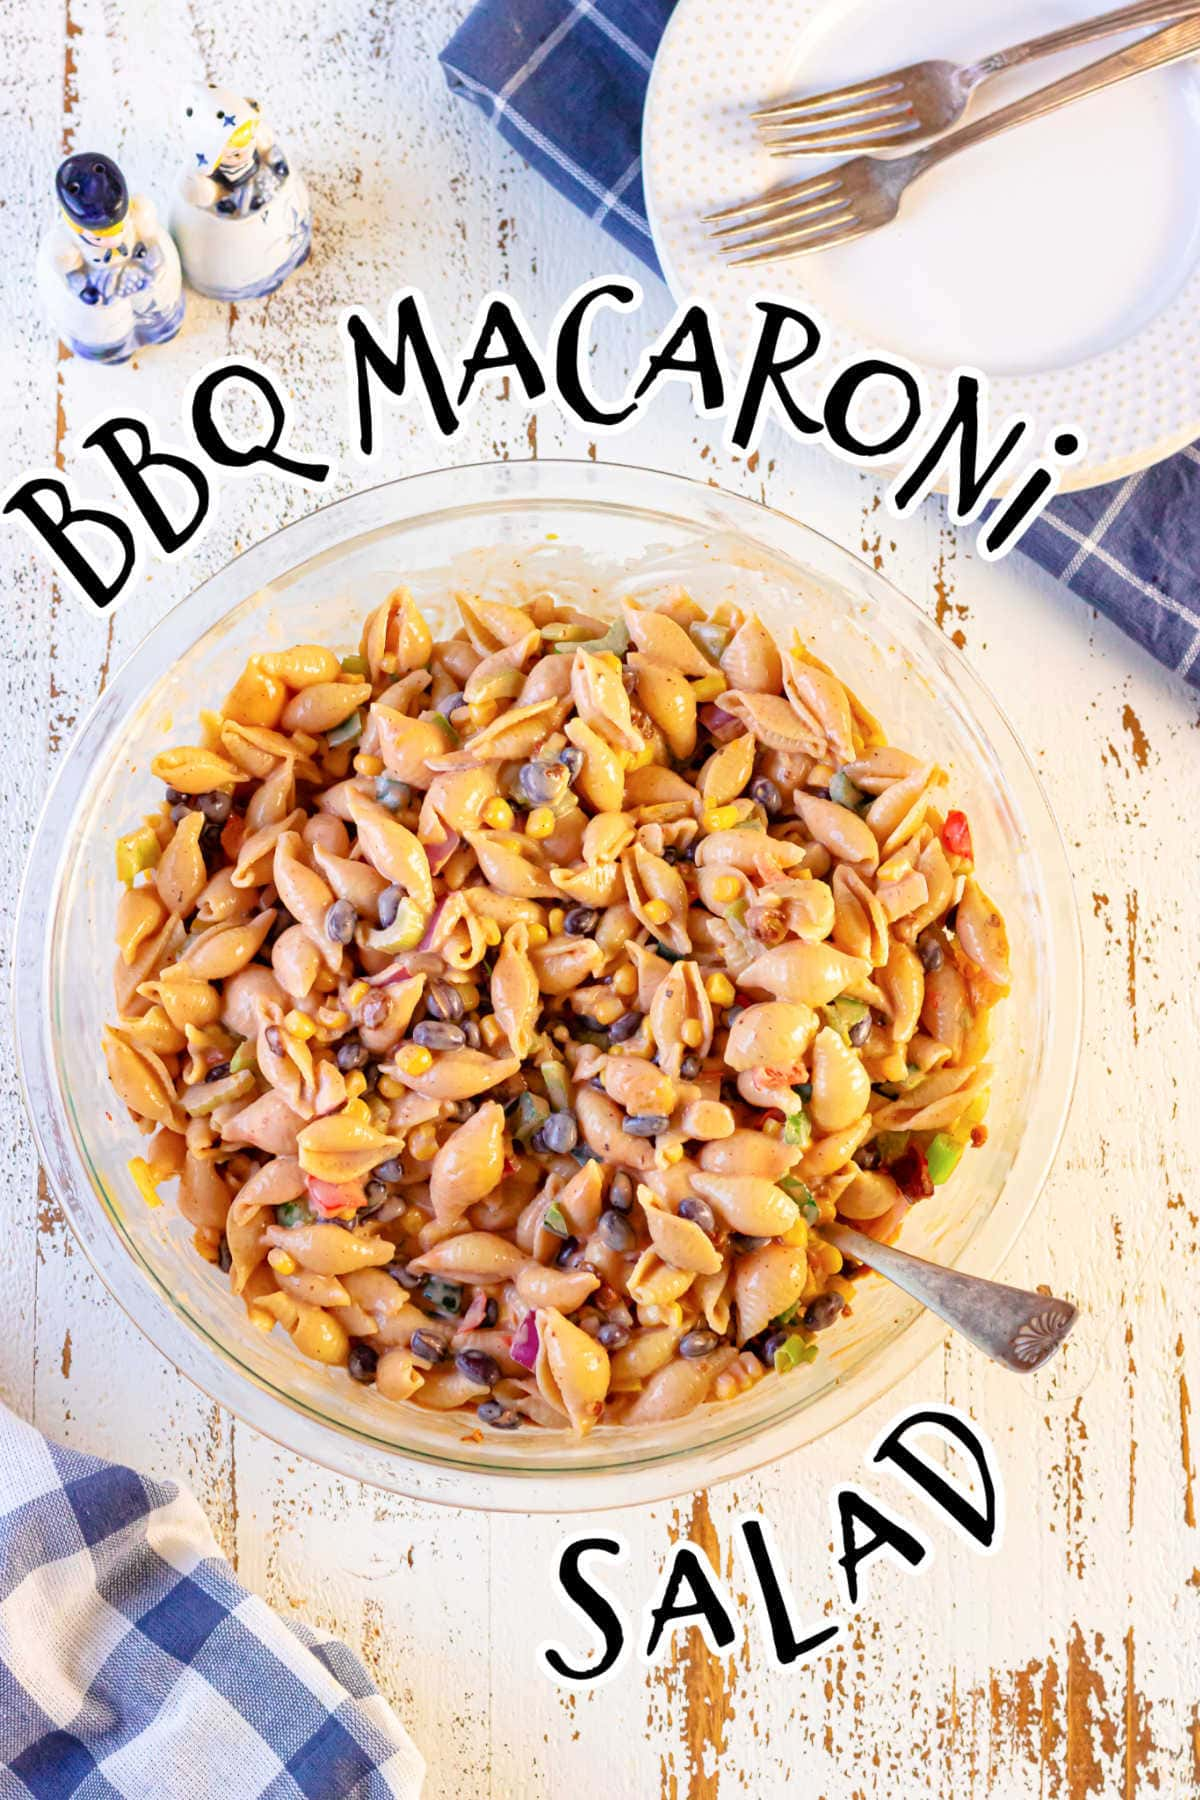 Overhead view of a bowl of macaroni salad with a title text overlay.